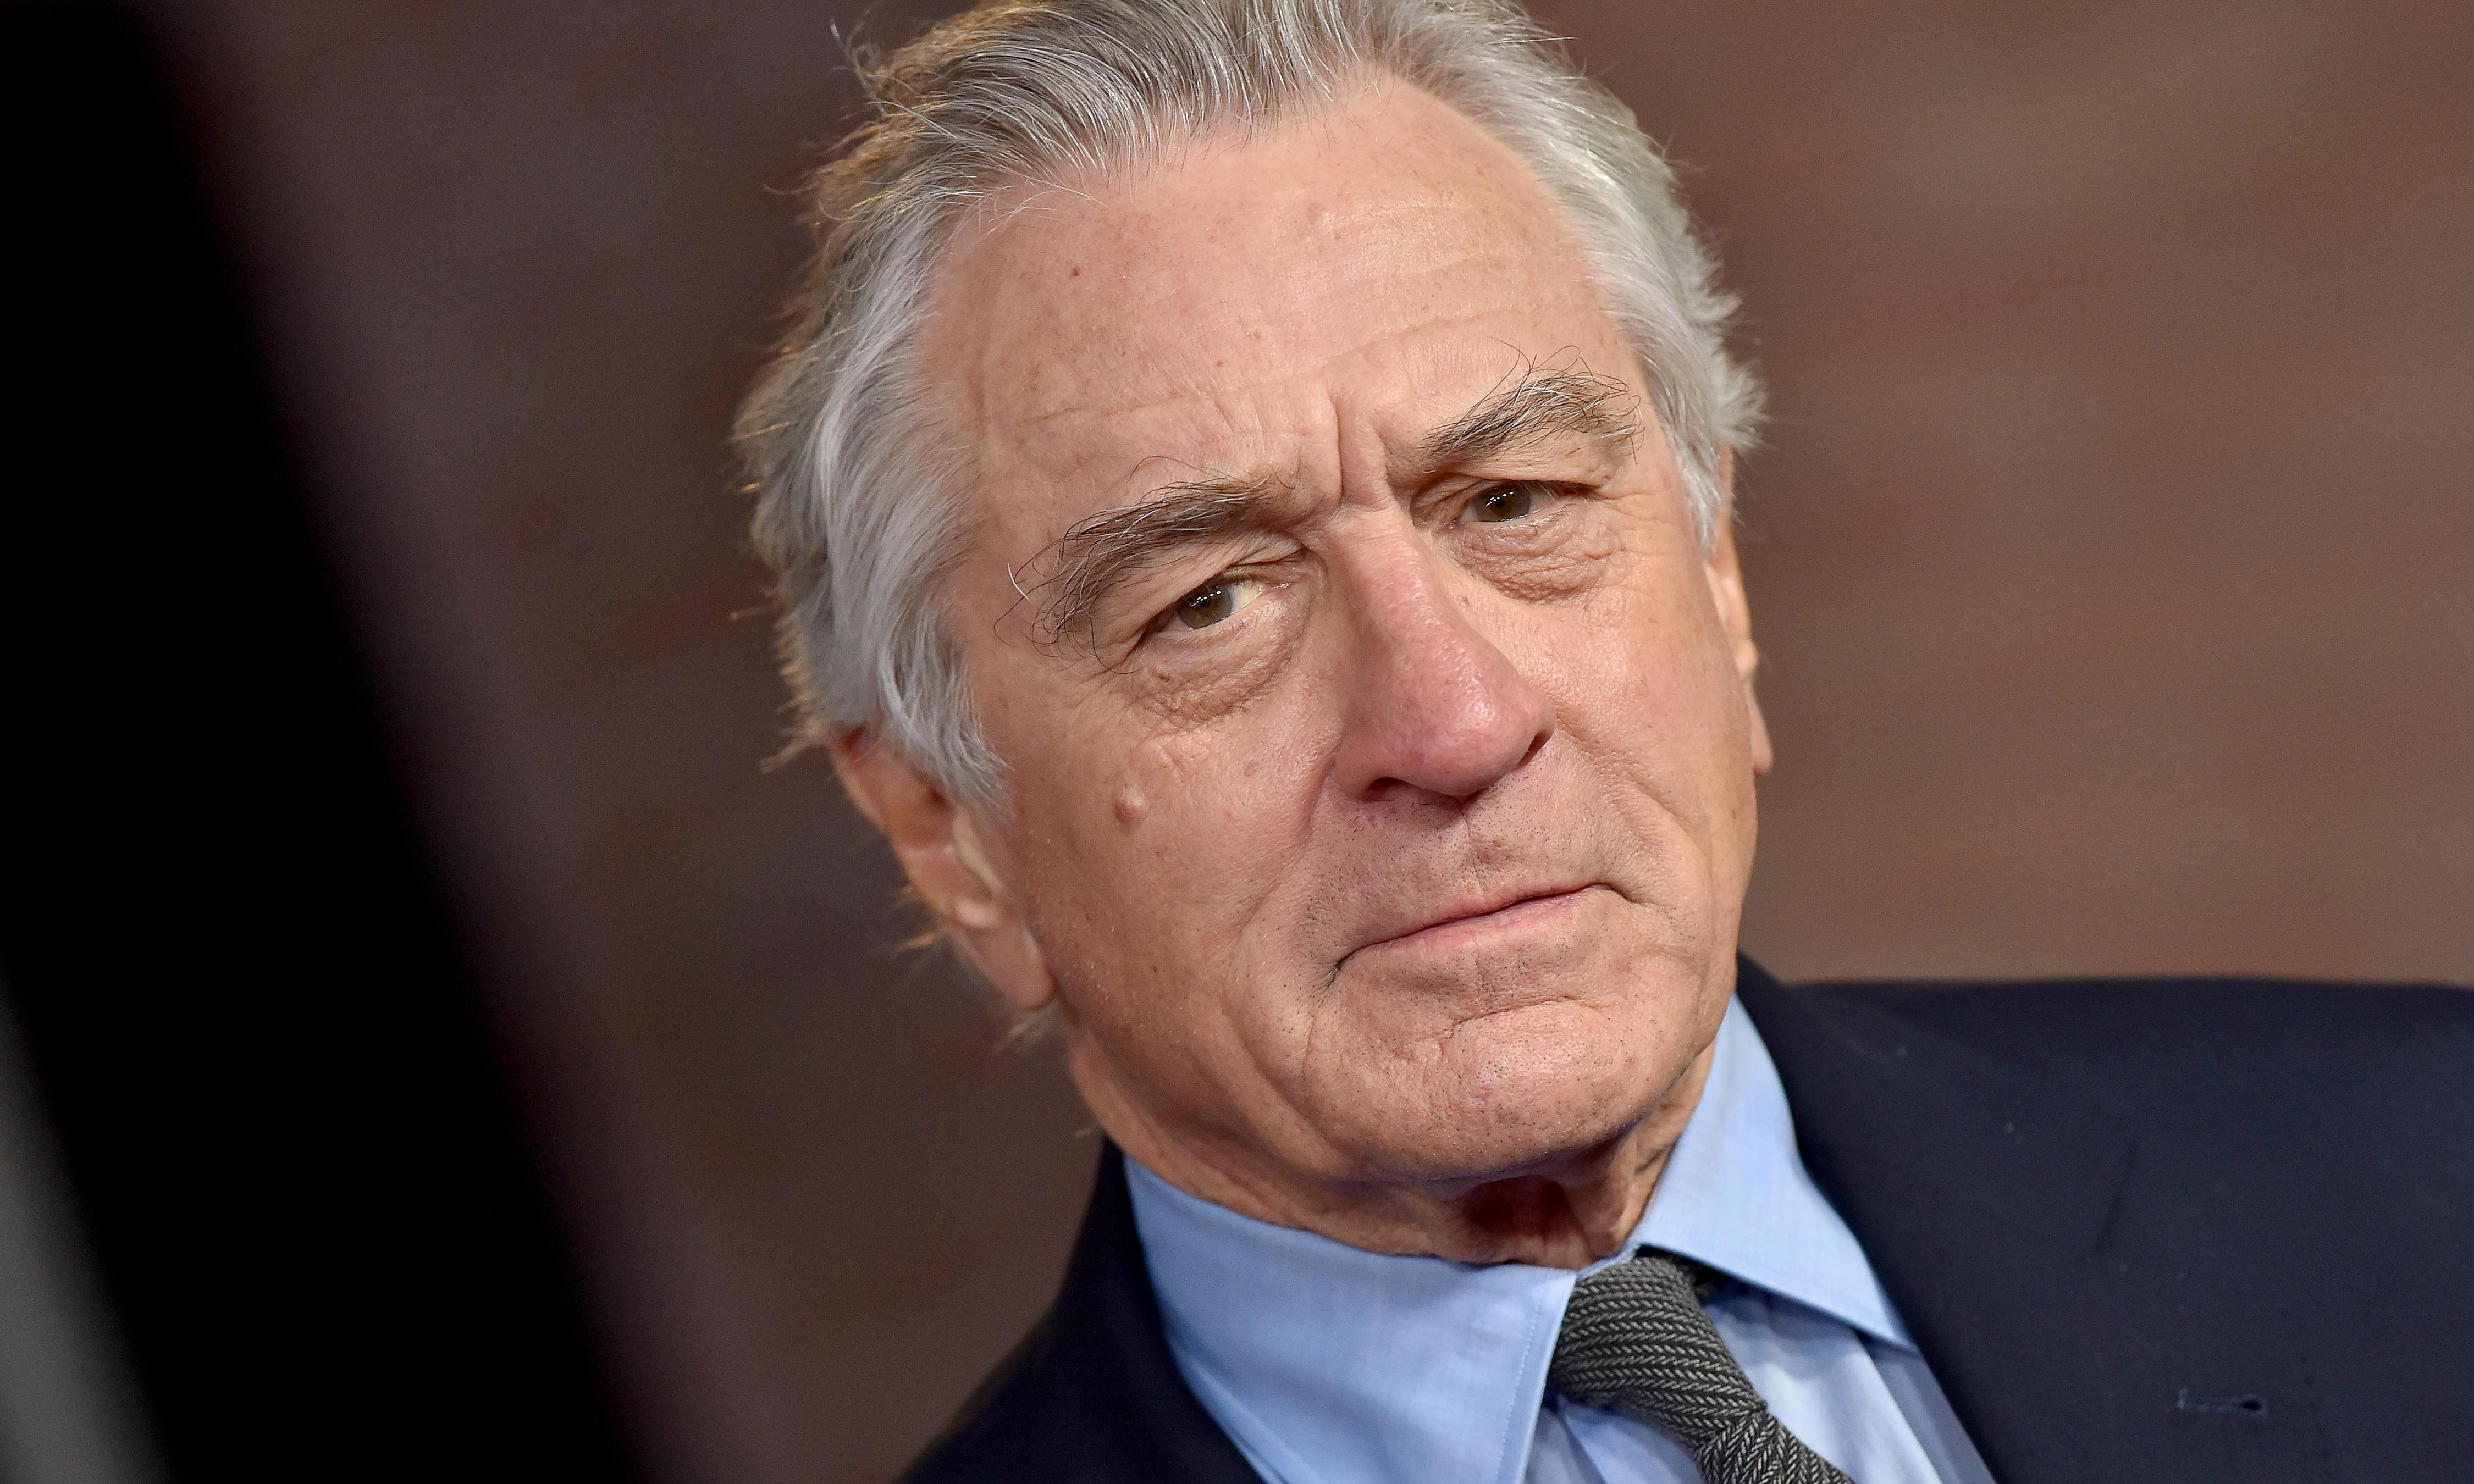 The Irishman launches into Oscar race with National Board of Review win